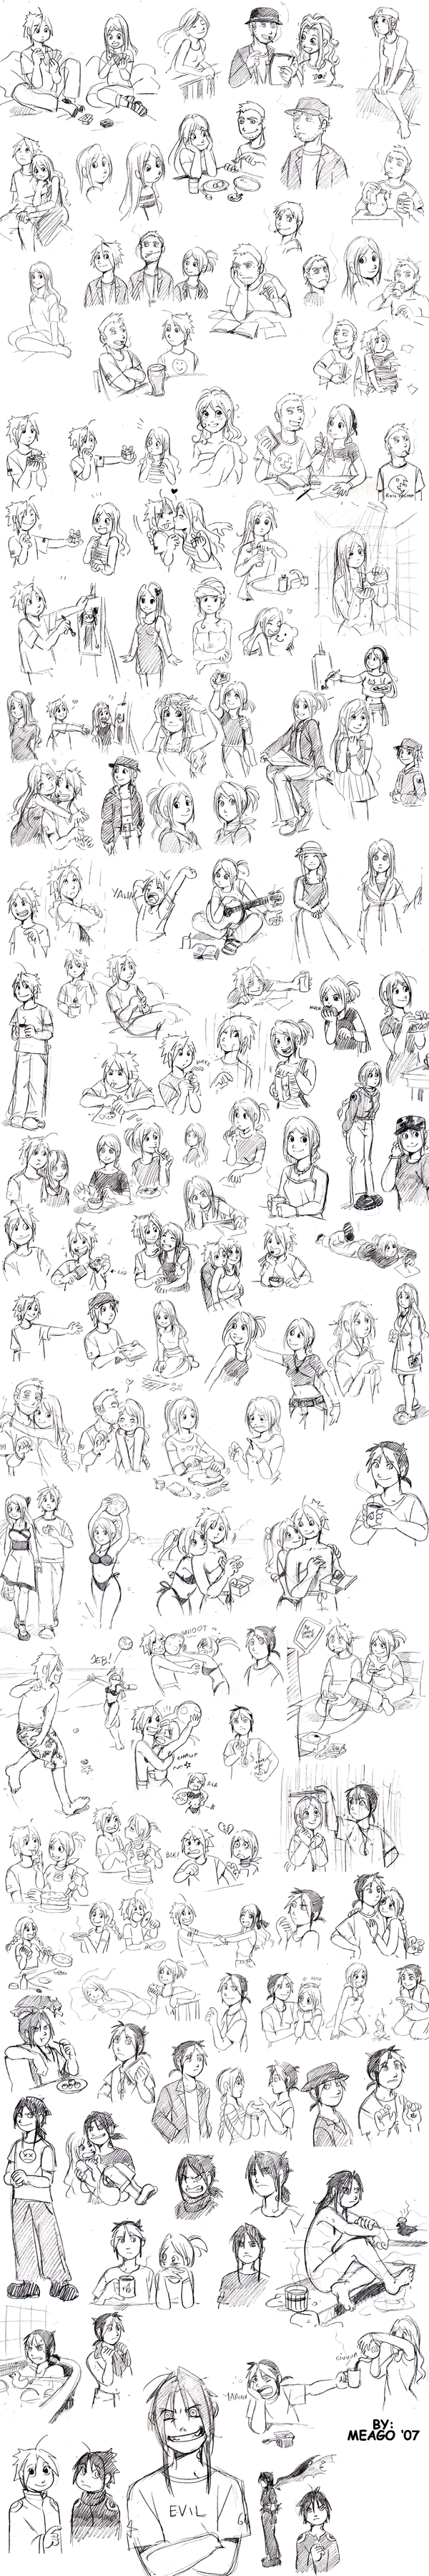 new sketches by meago